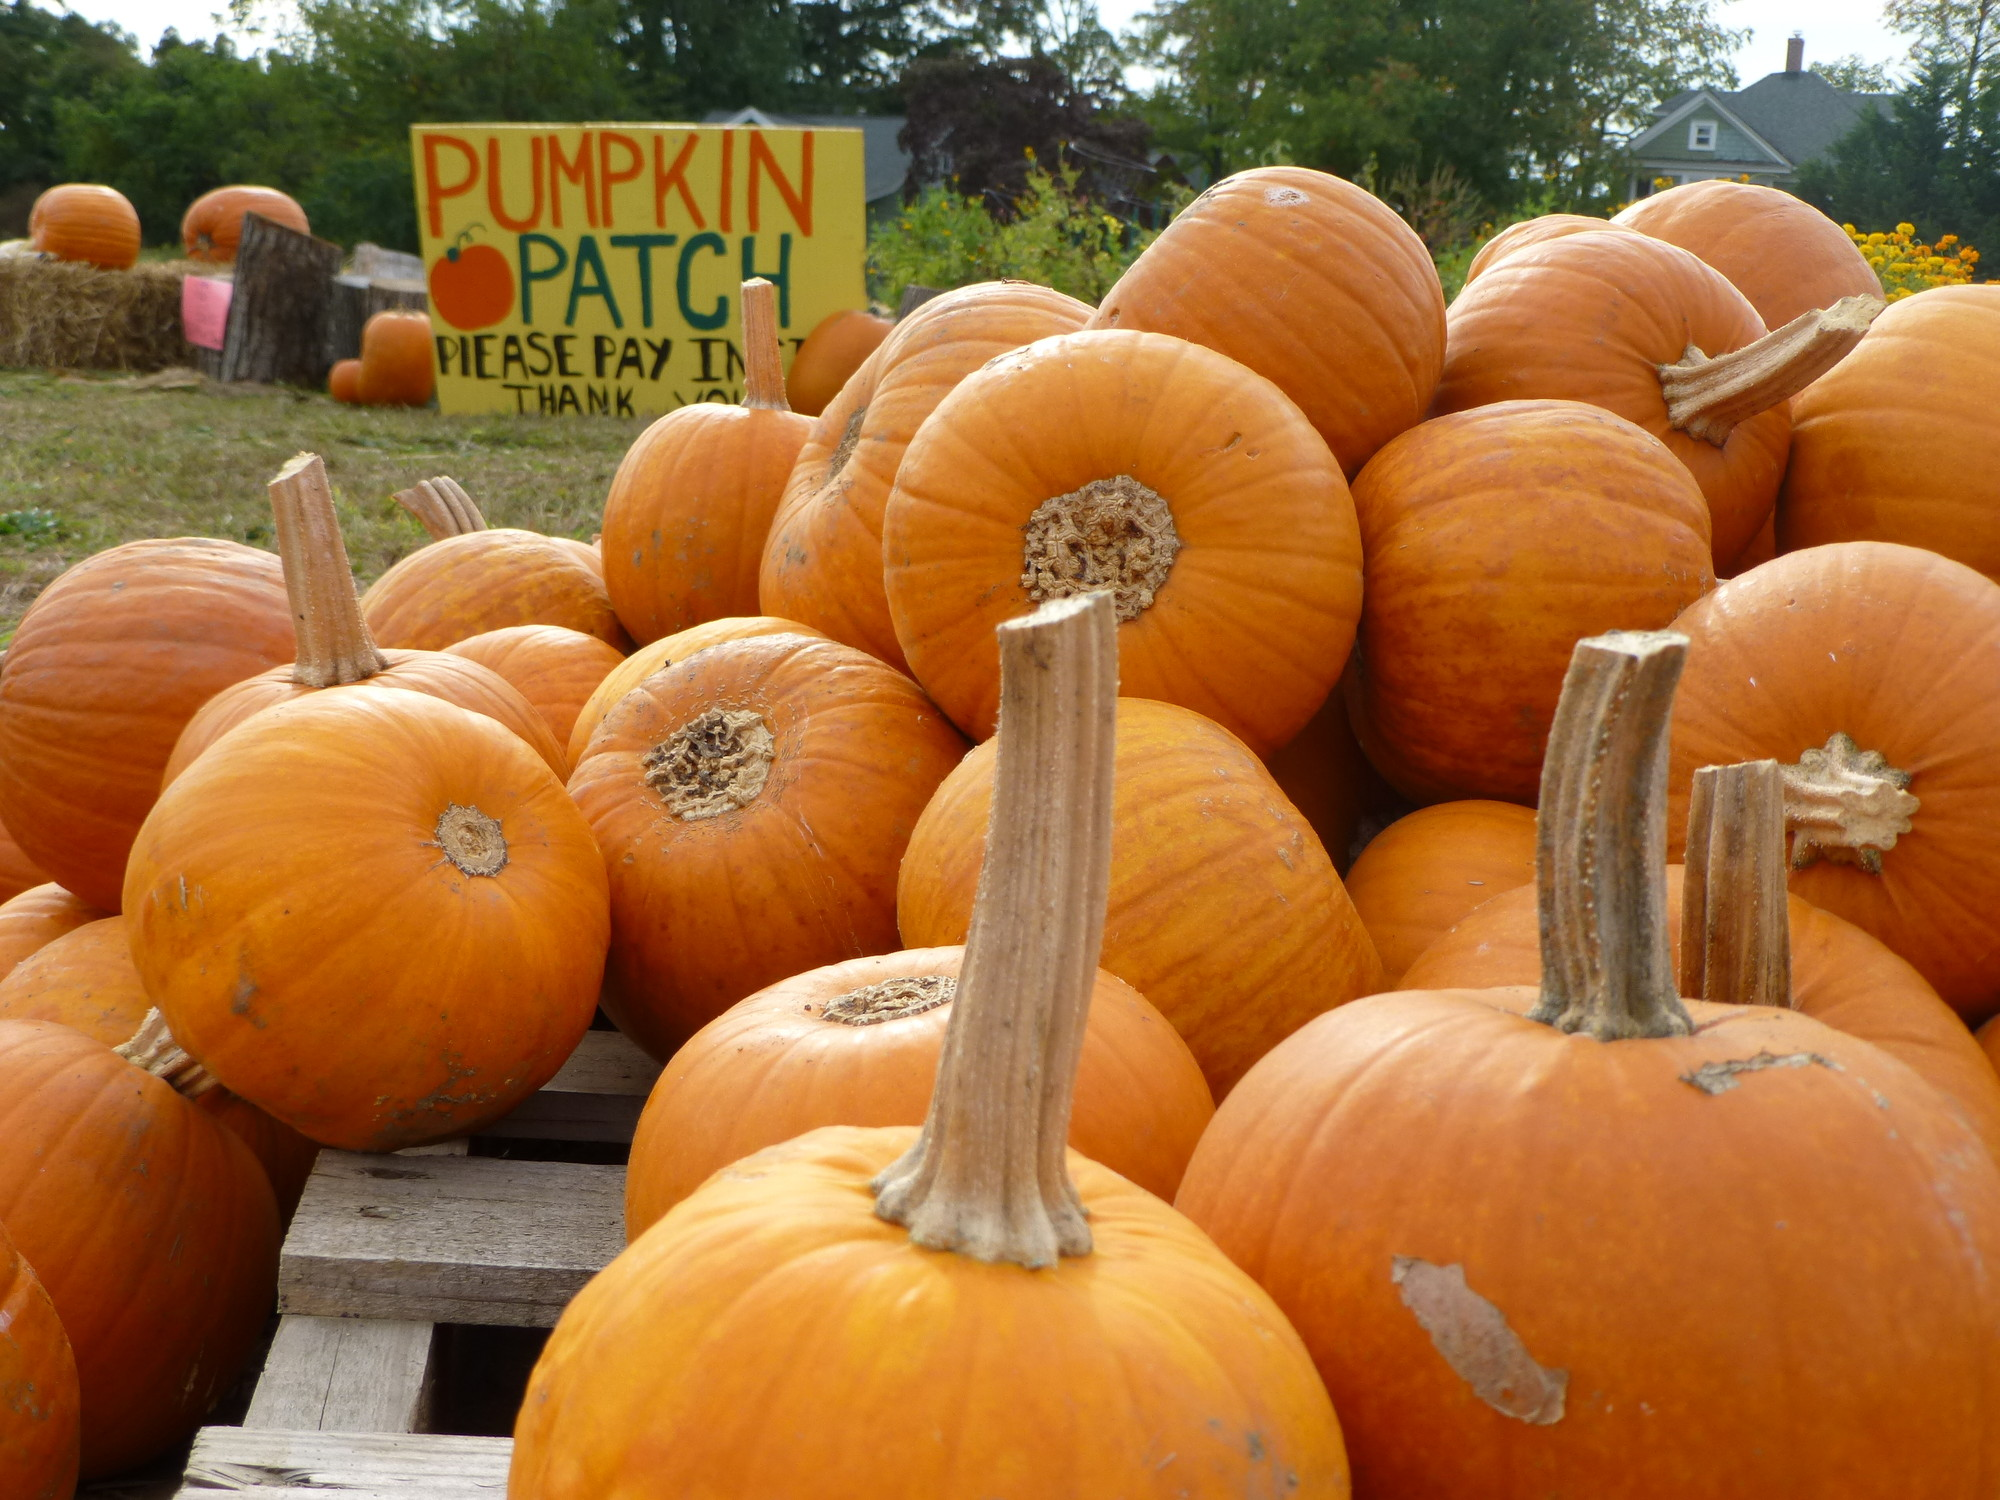 Pumpkin picking, this season